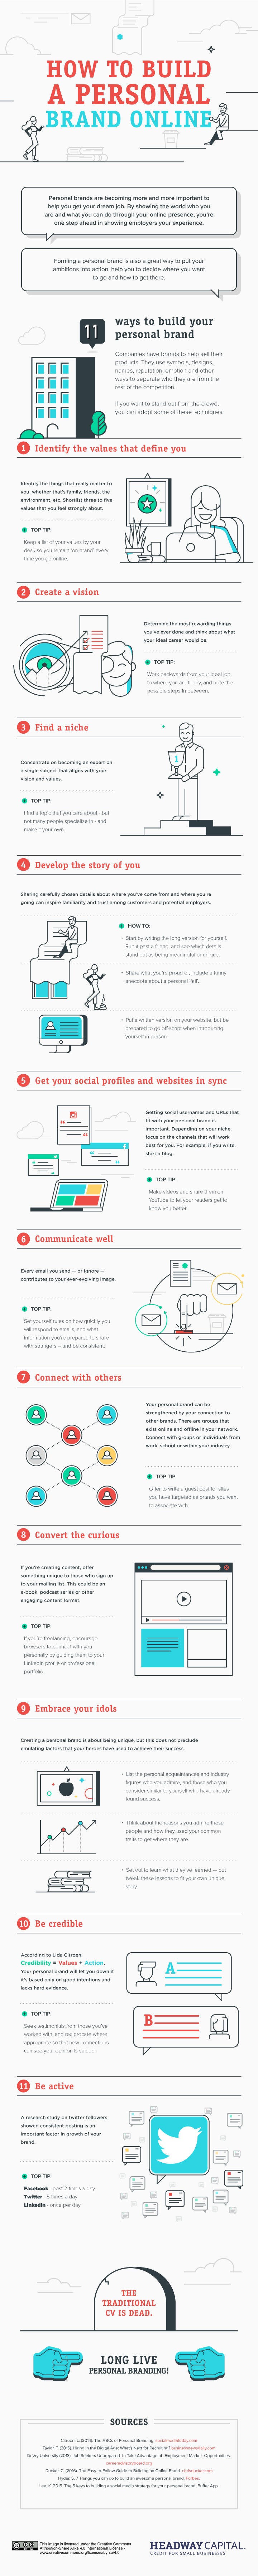 How to build a personal brand online - infographic